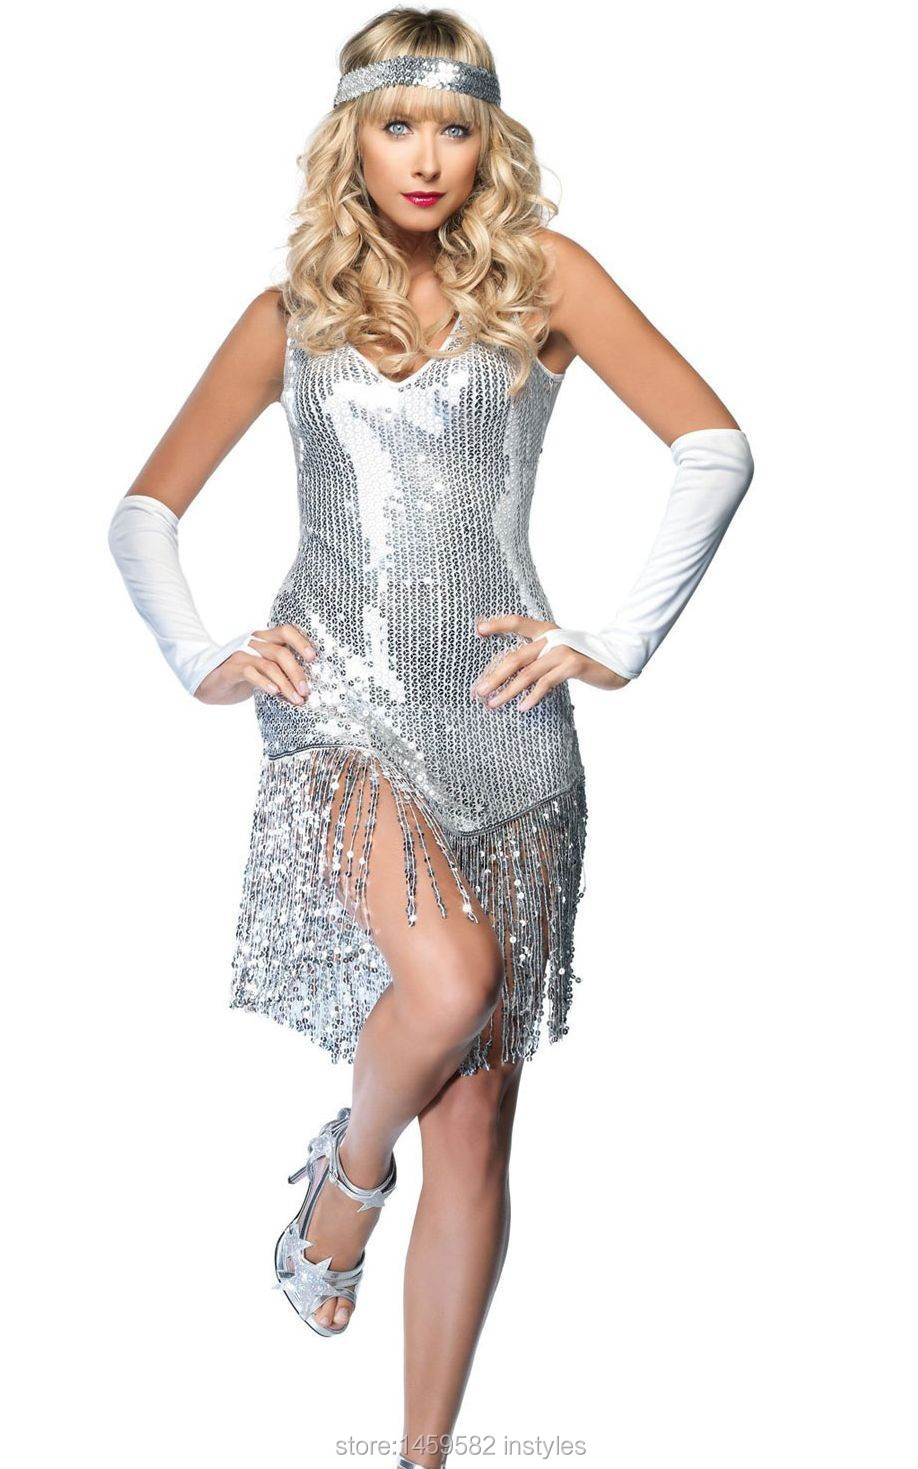 ... Girl Costume In Sequined Free shipping sequined sleeveless dress.  F1198-1 F2090  7.12 ... a6cc8ffc9d0d